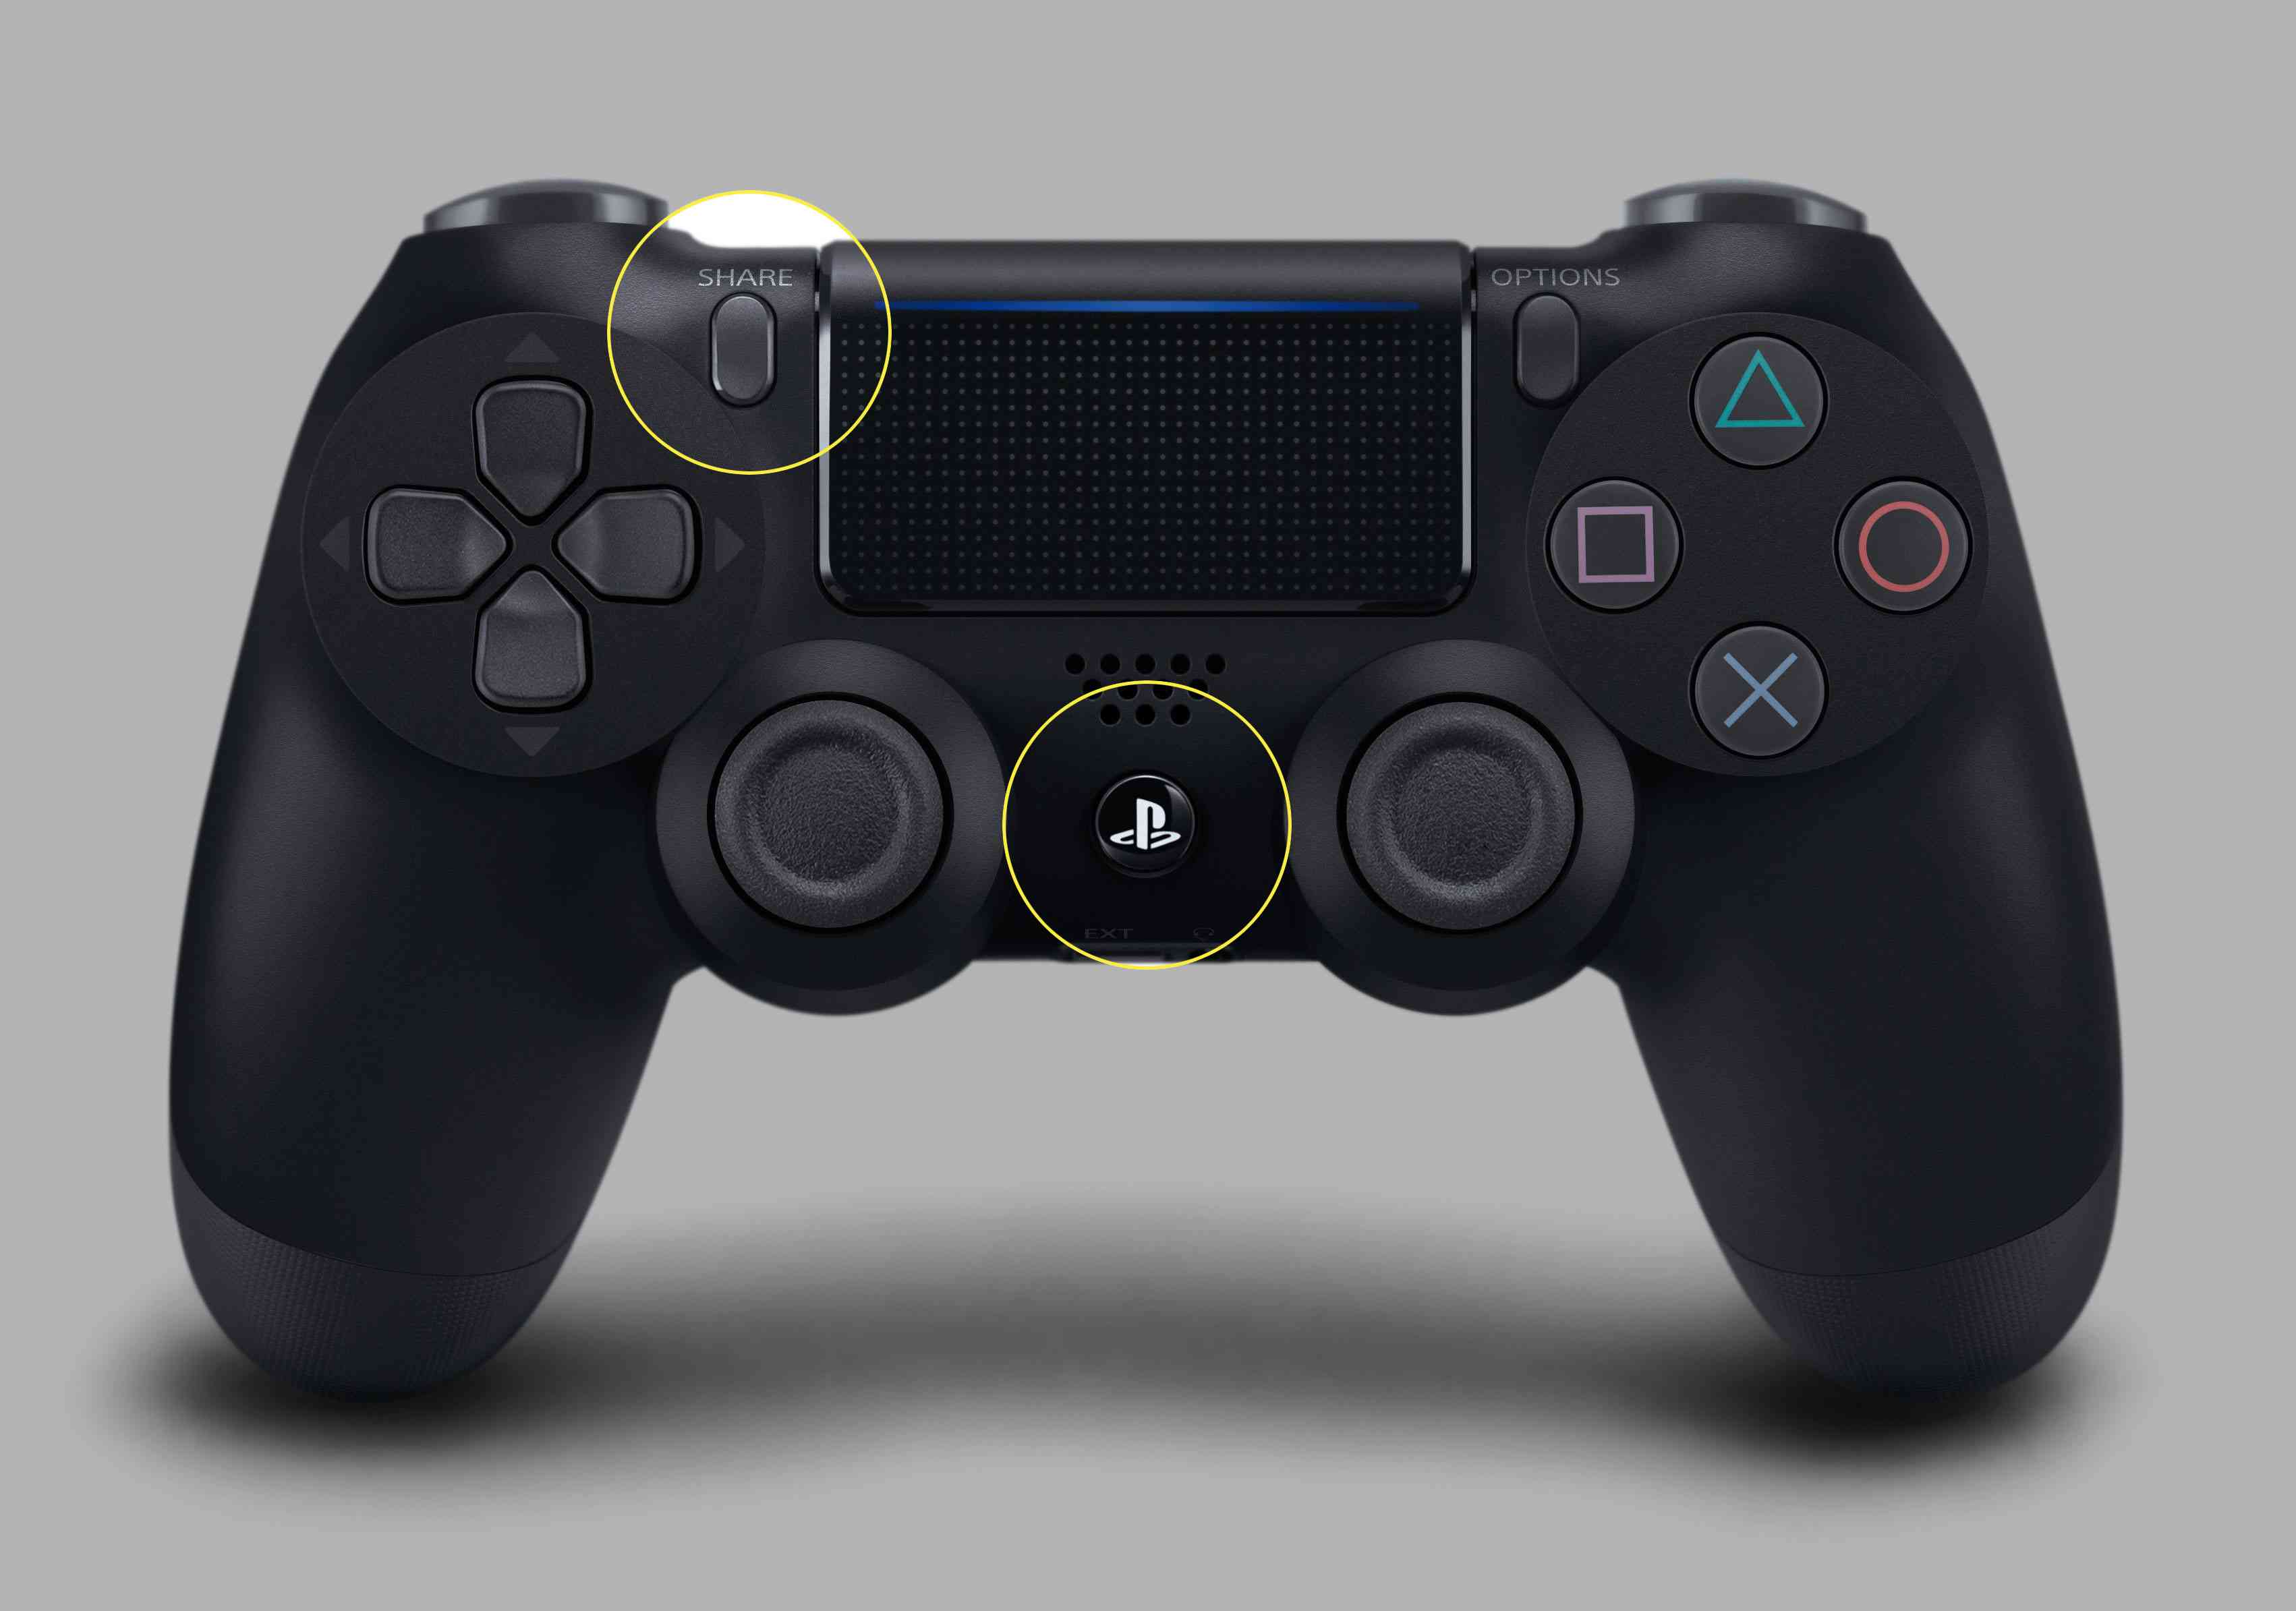 The Share and PS buttons on a DualShock 4